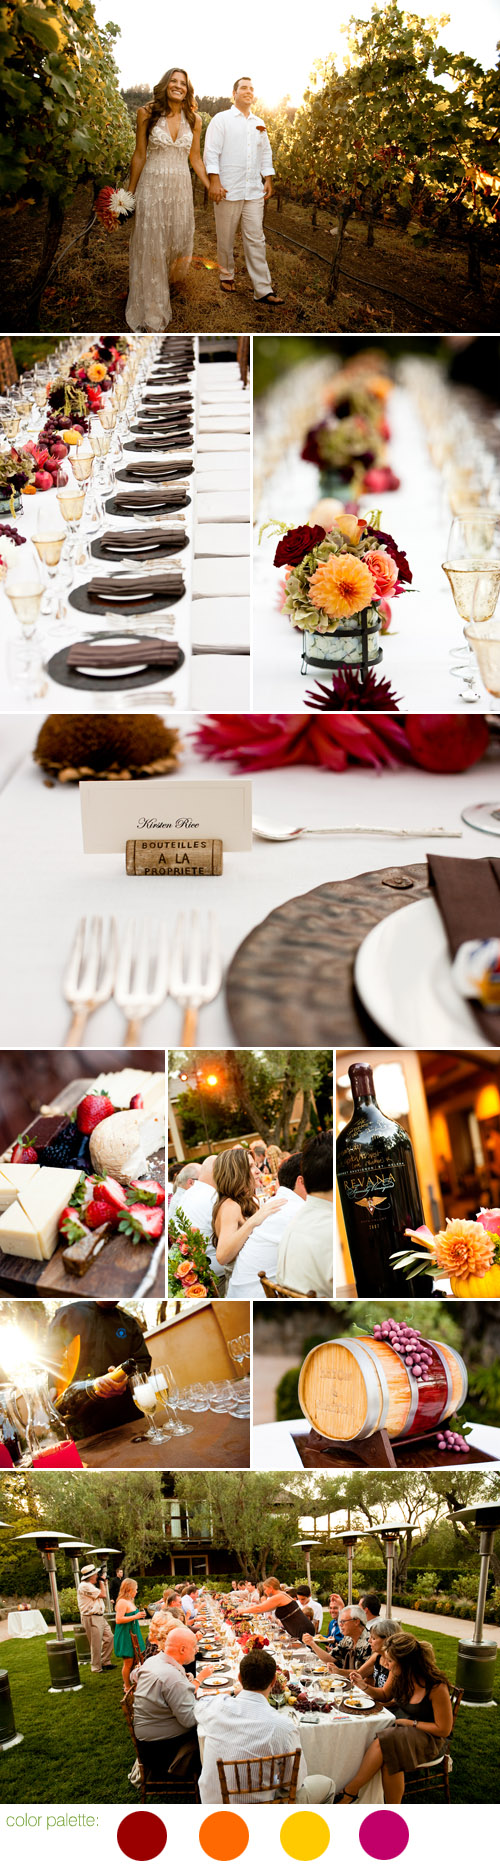 Napa Valley fall wedding photographed by Jennifer Kloss